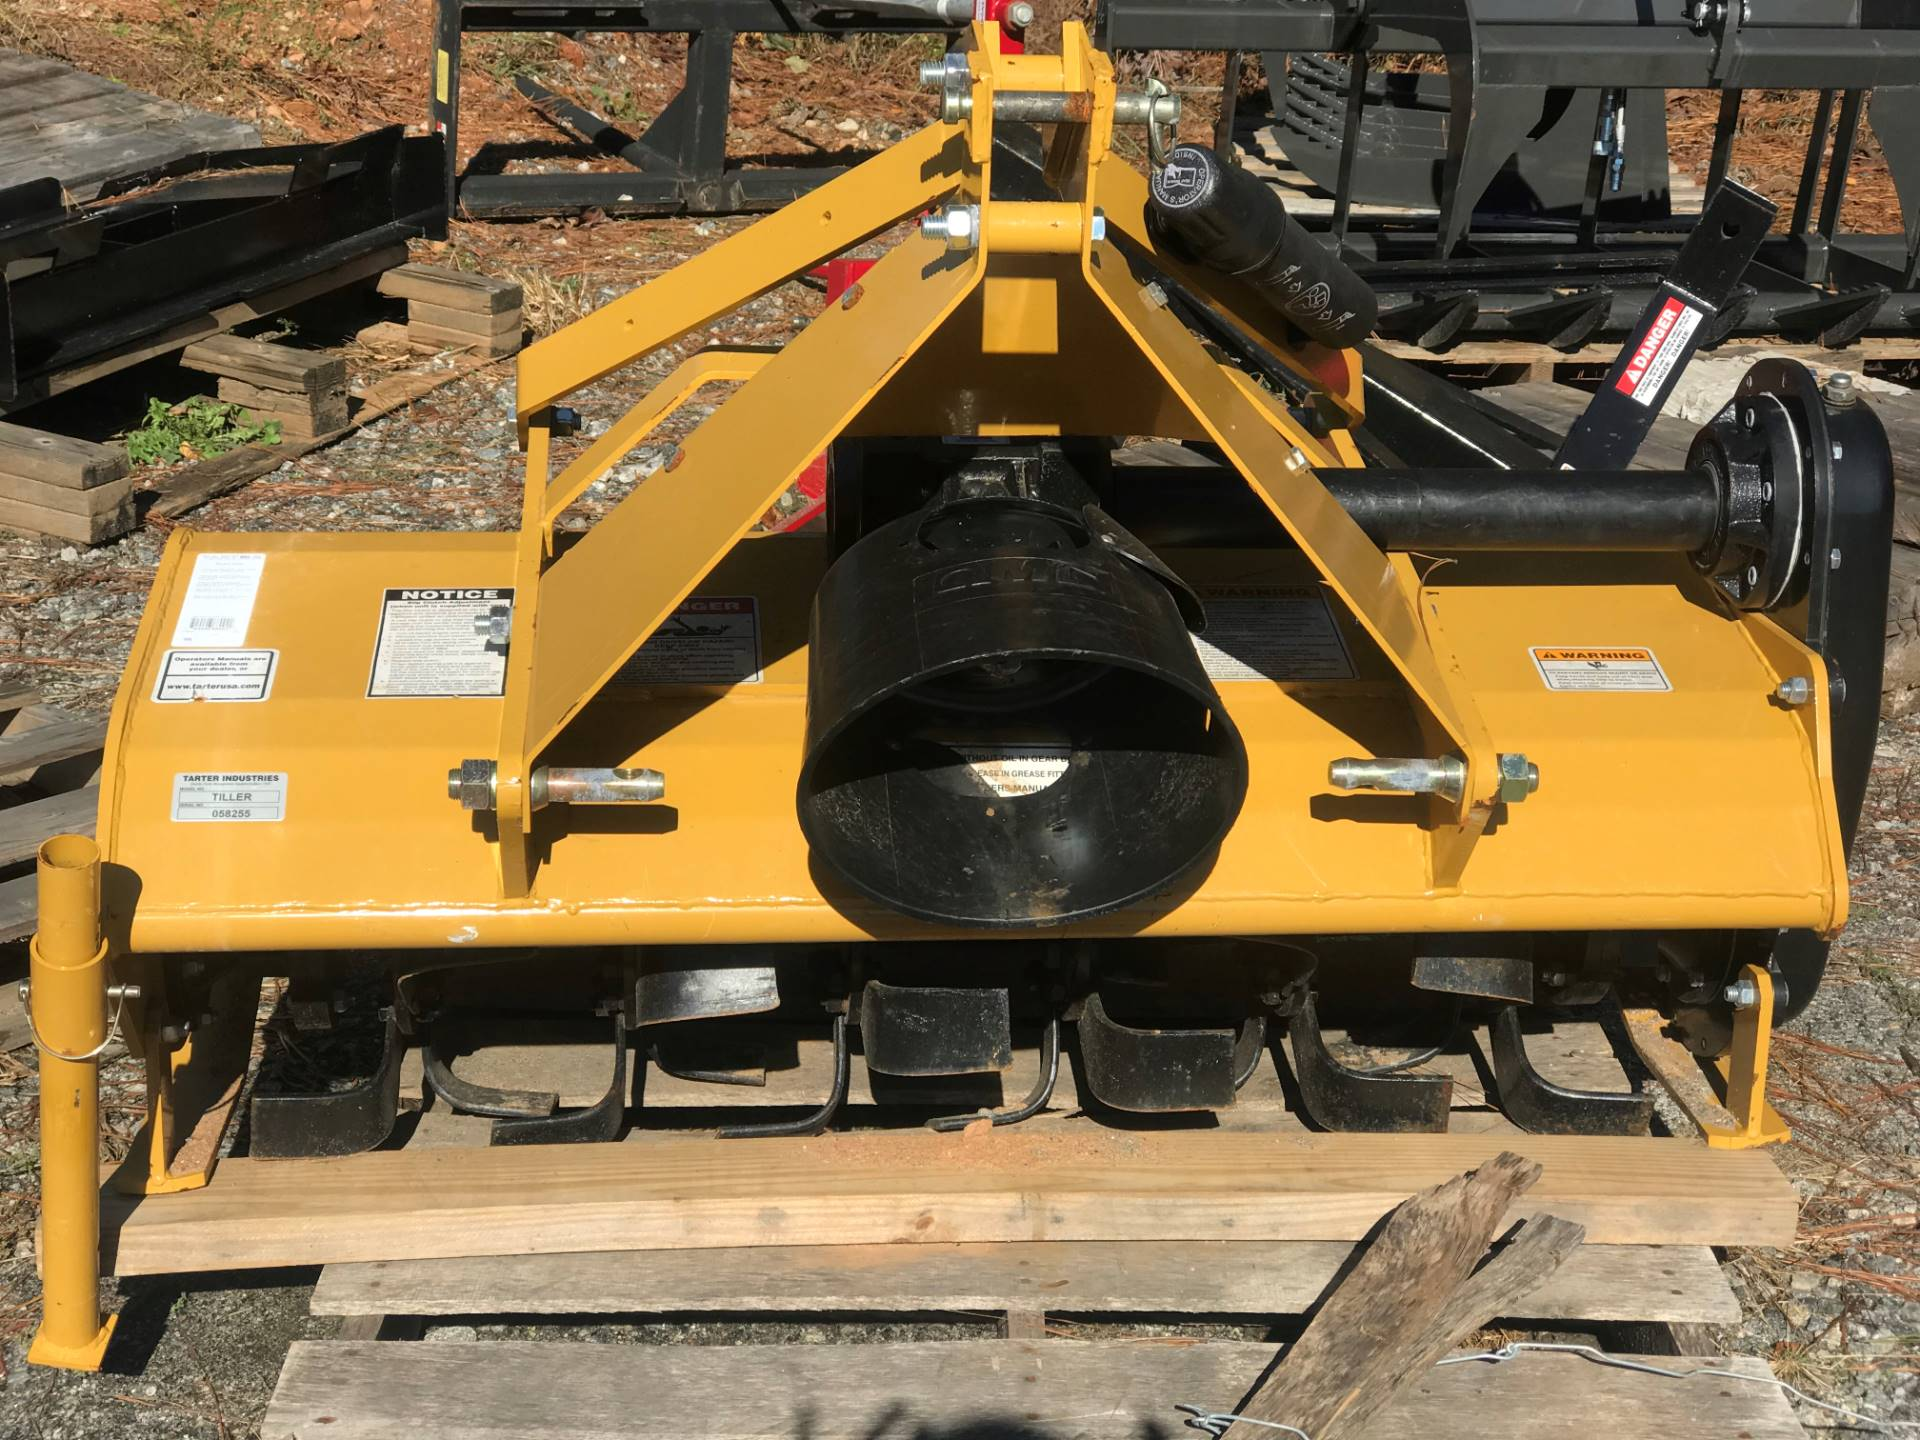 2019 Tarter Farm and Ranch Equipment Tiller in Cumming, Georgia